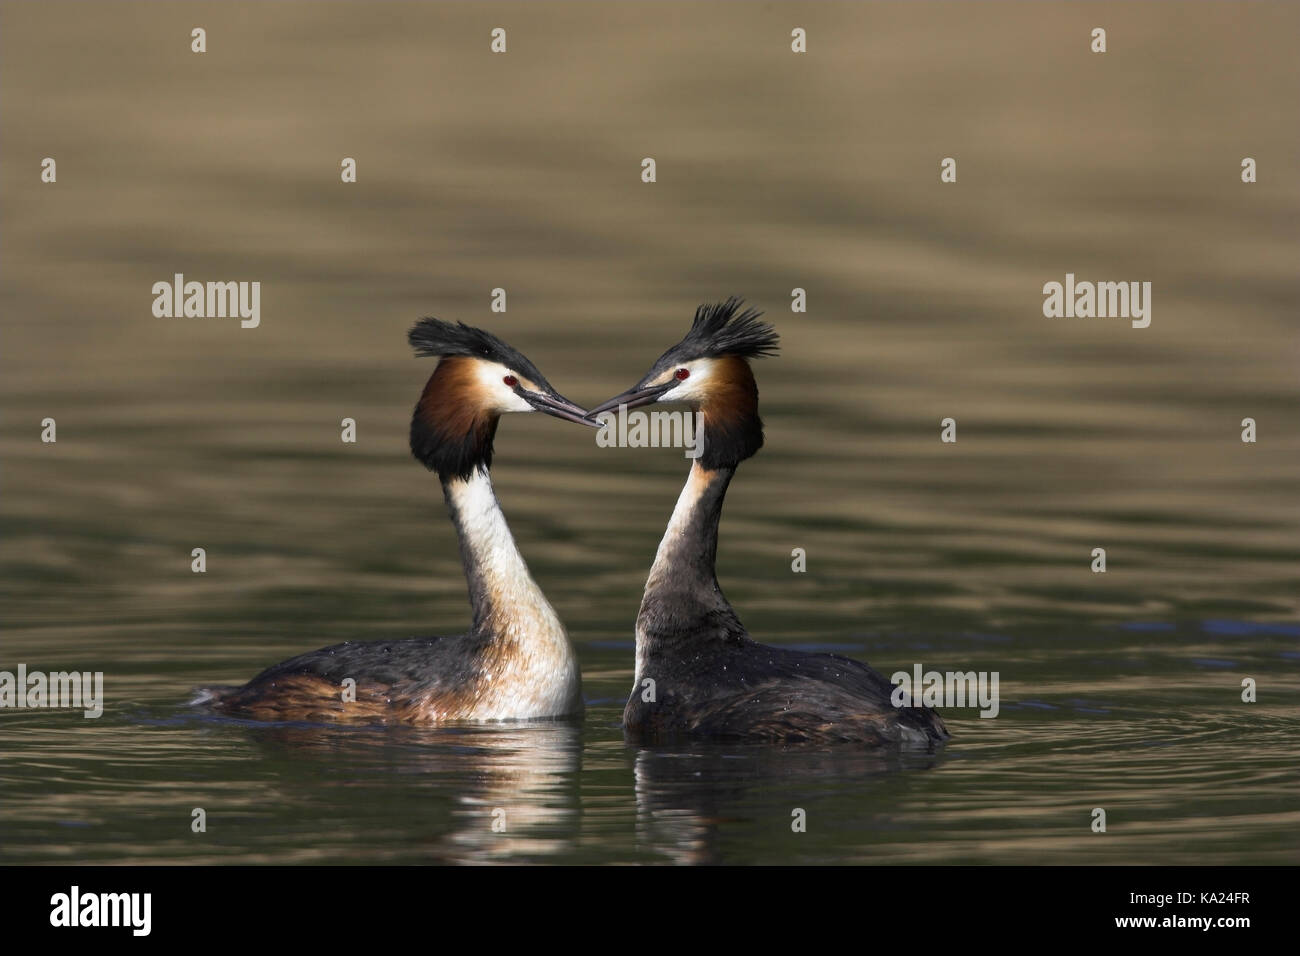 Courtship display, Balz - Stock Image